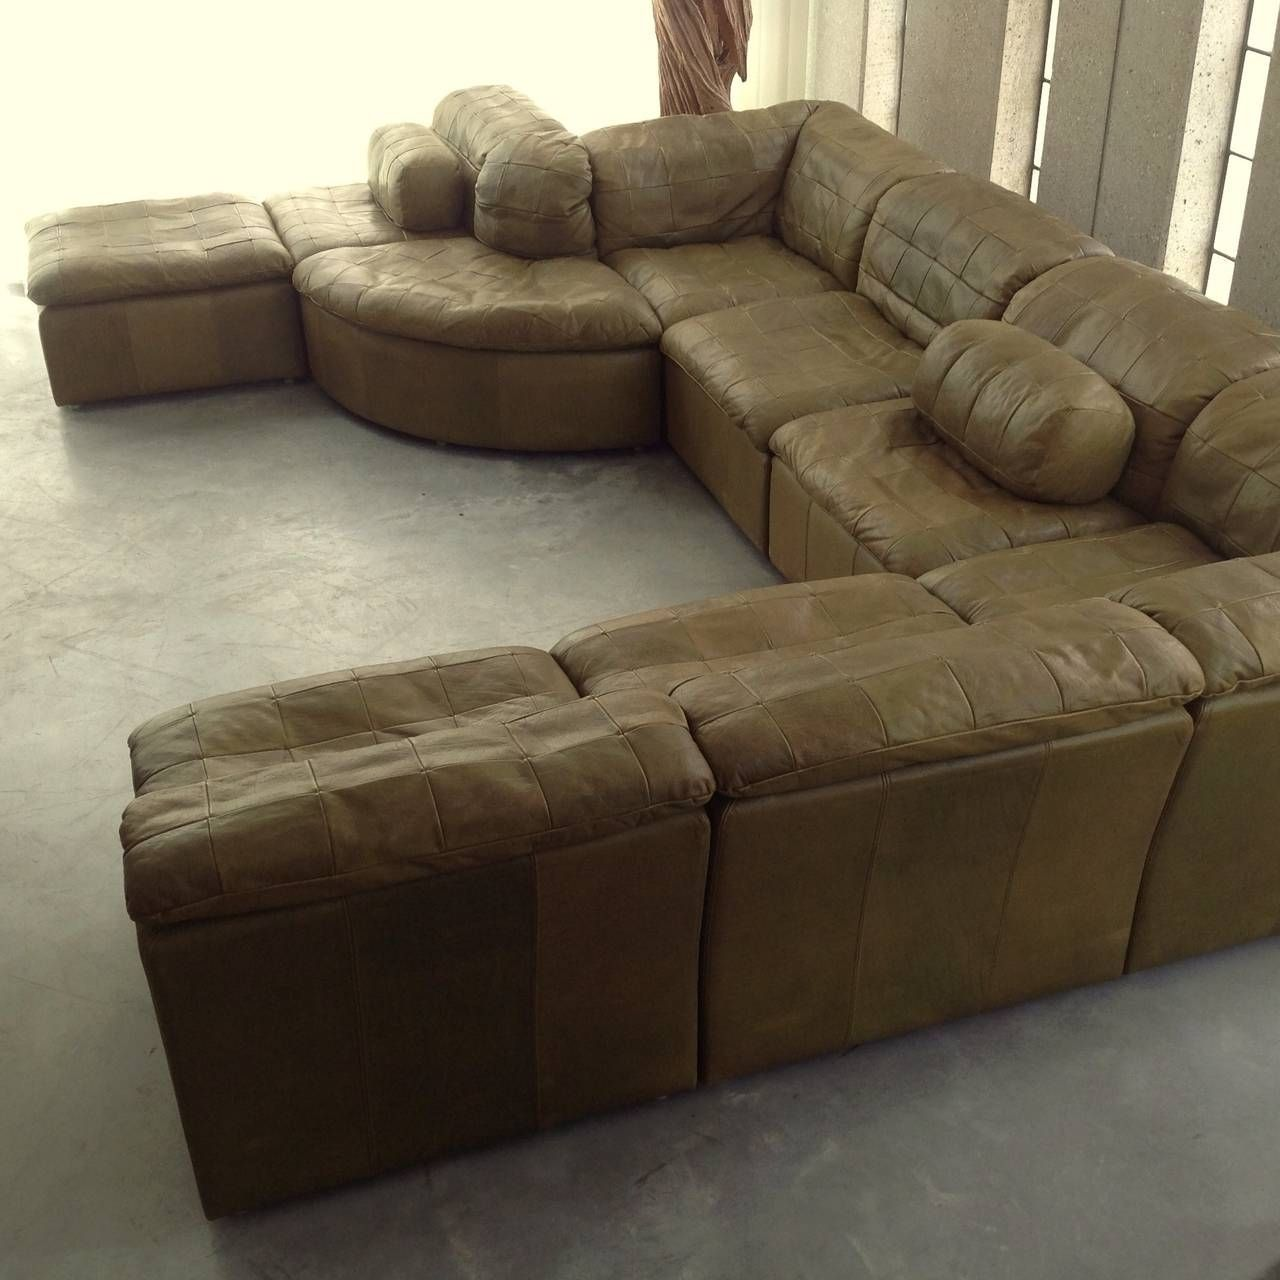 Sectional Sofa Olive Green: Olive Green Leather Sofa Green Sectional Sofa With Chaise